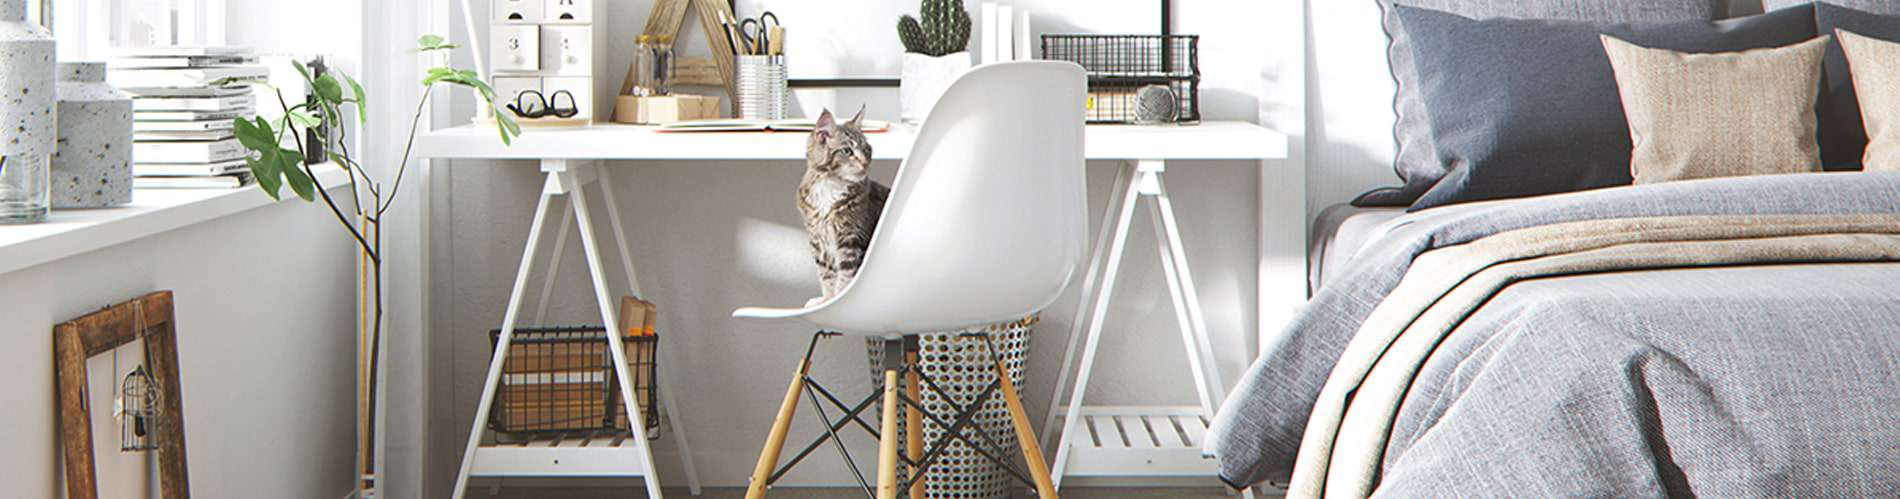 Eames chair beside bed with cat sitting on it - byBESPOEK